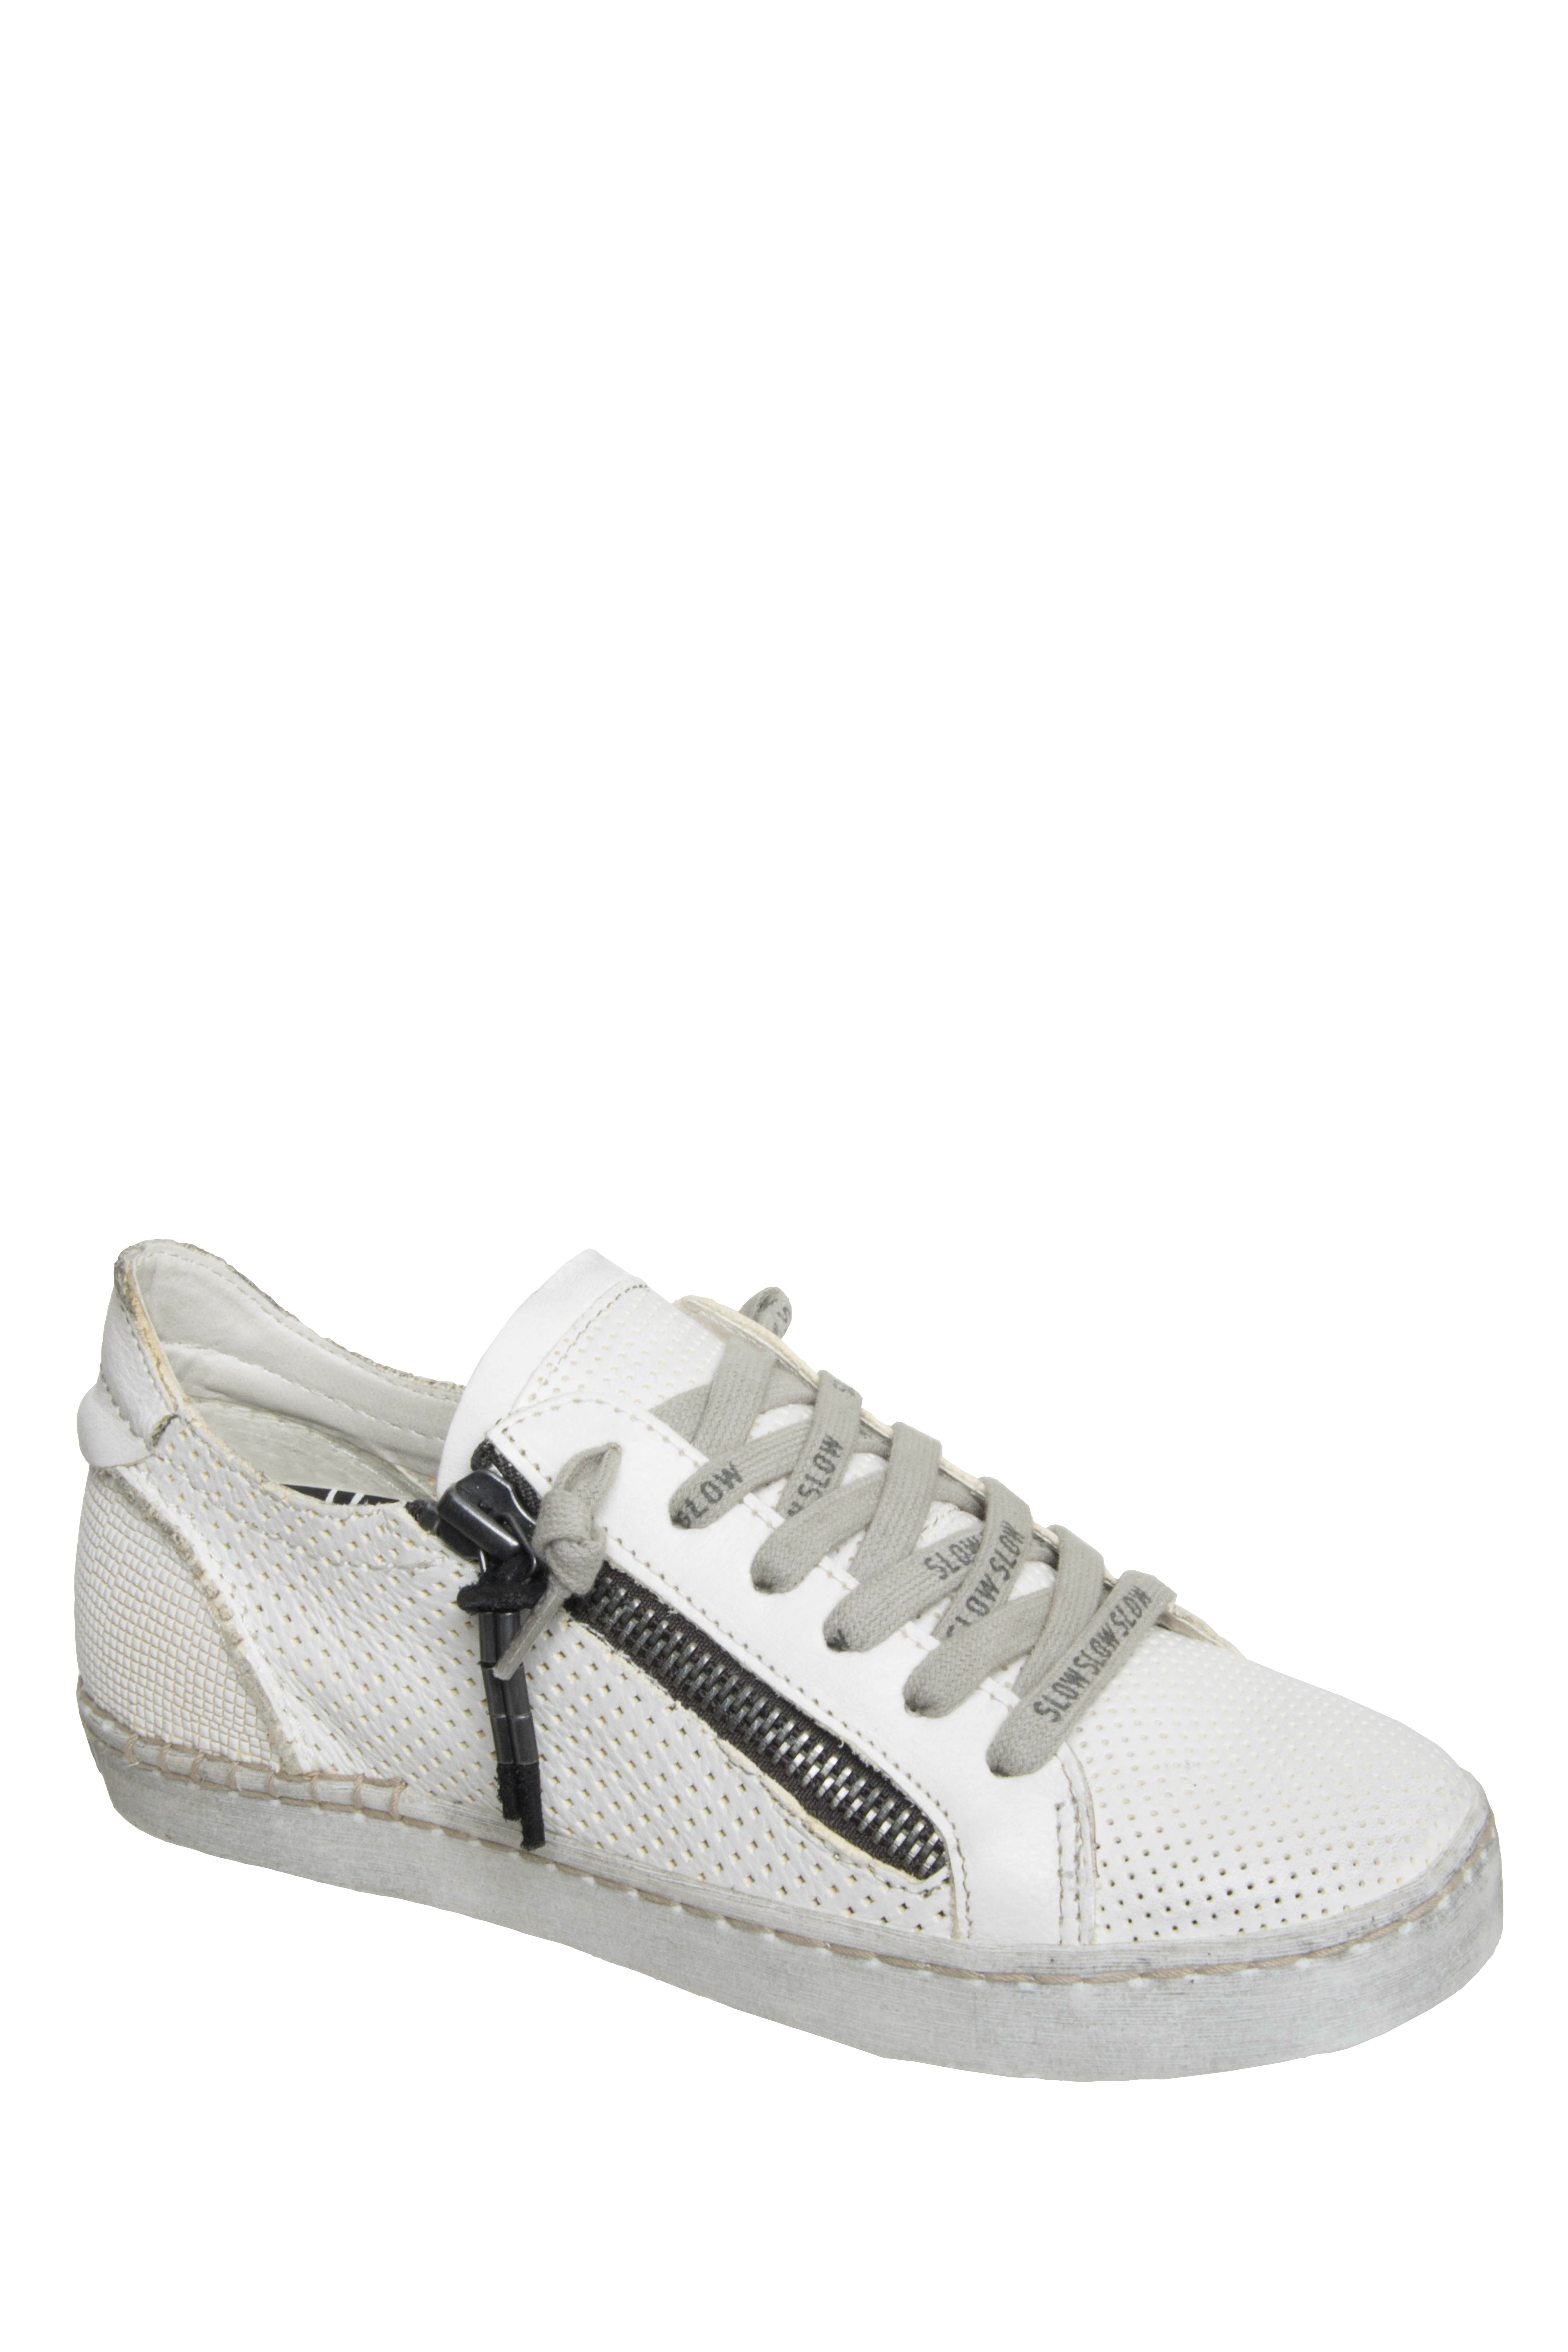 Dolce Vita Zombie Low Top Sneakers - White